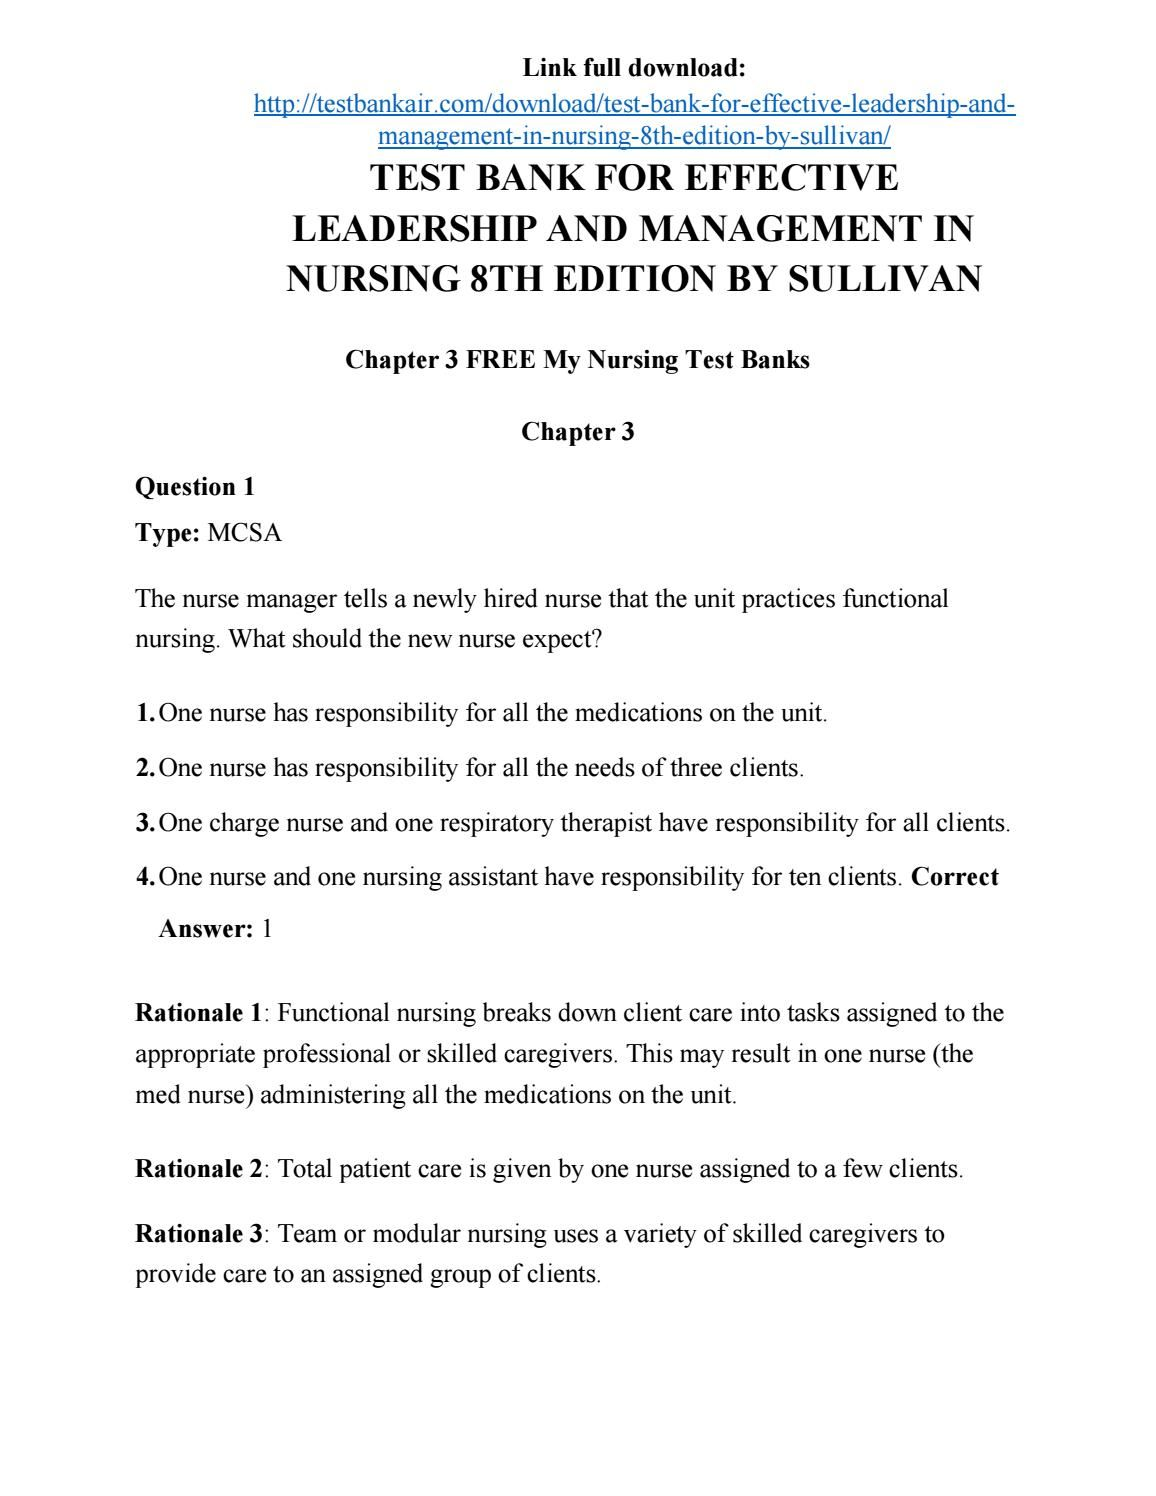 Download test bank for effective leadership and management